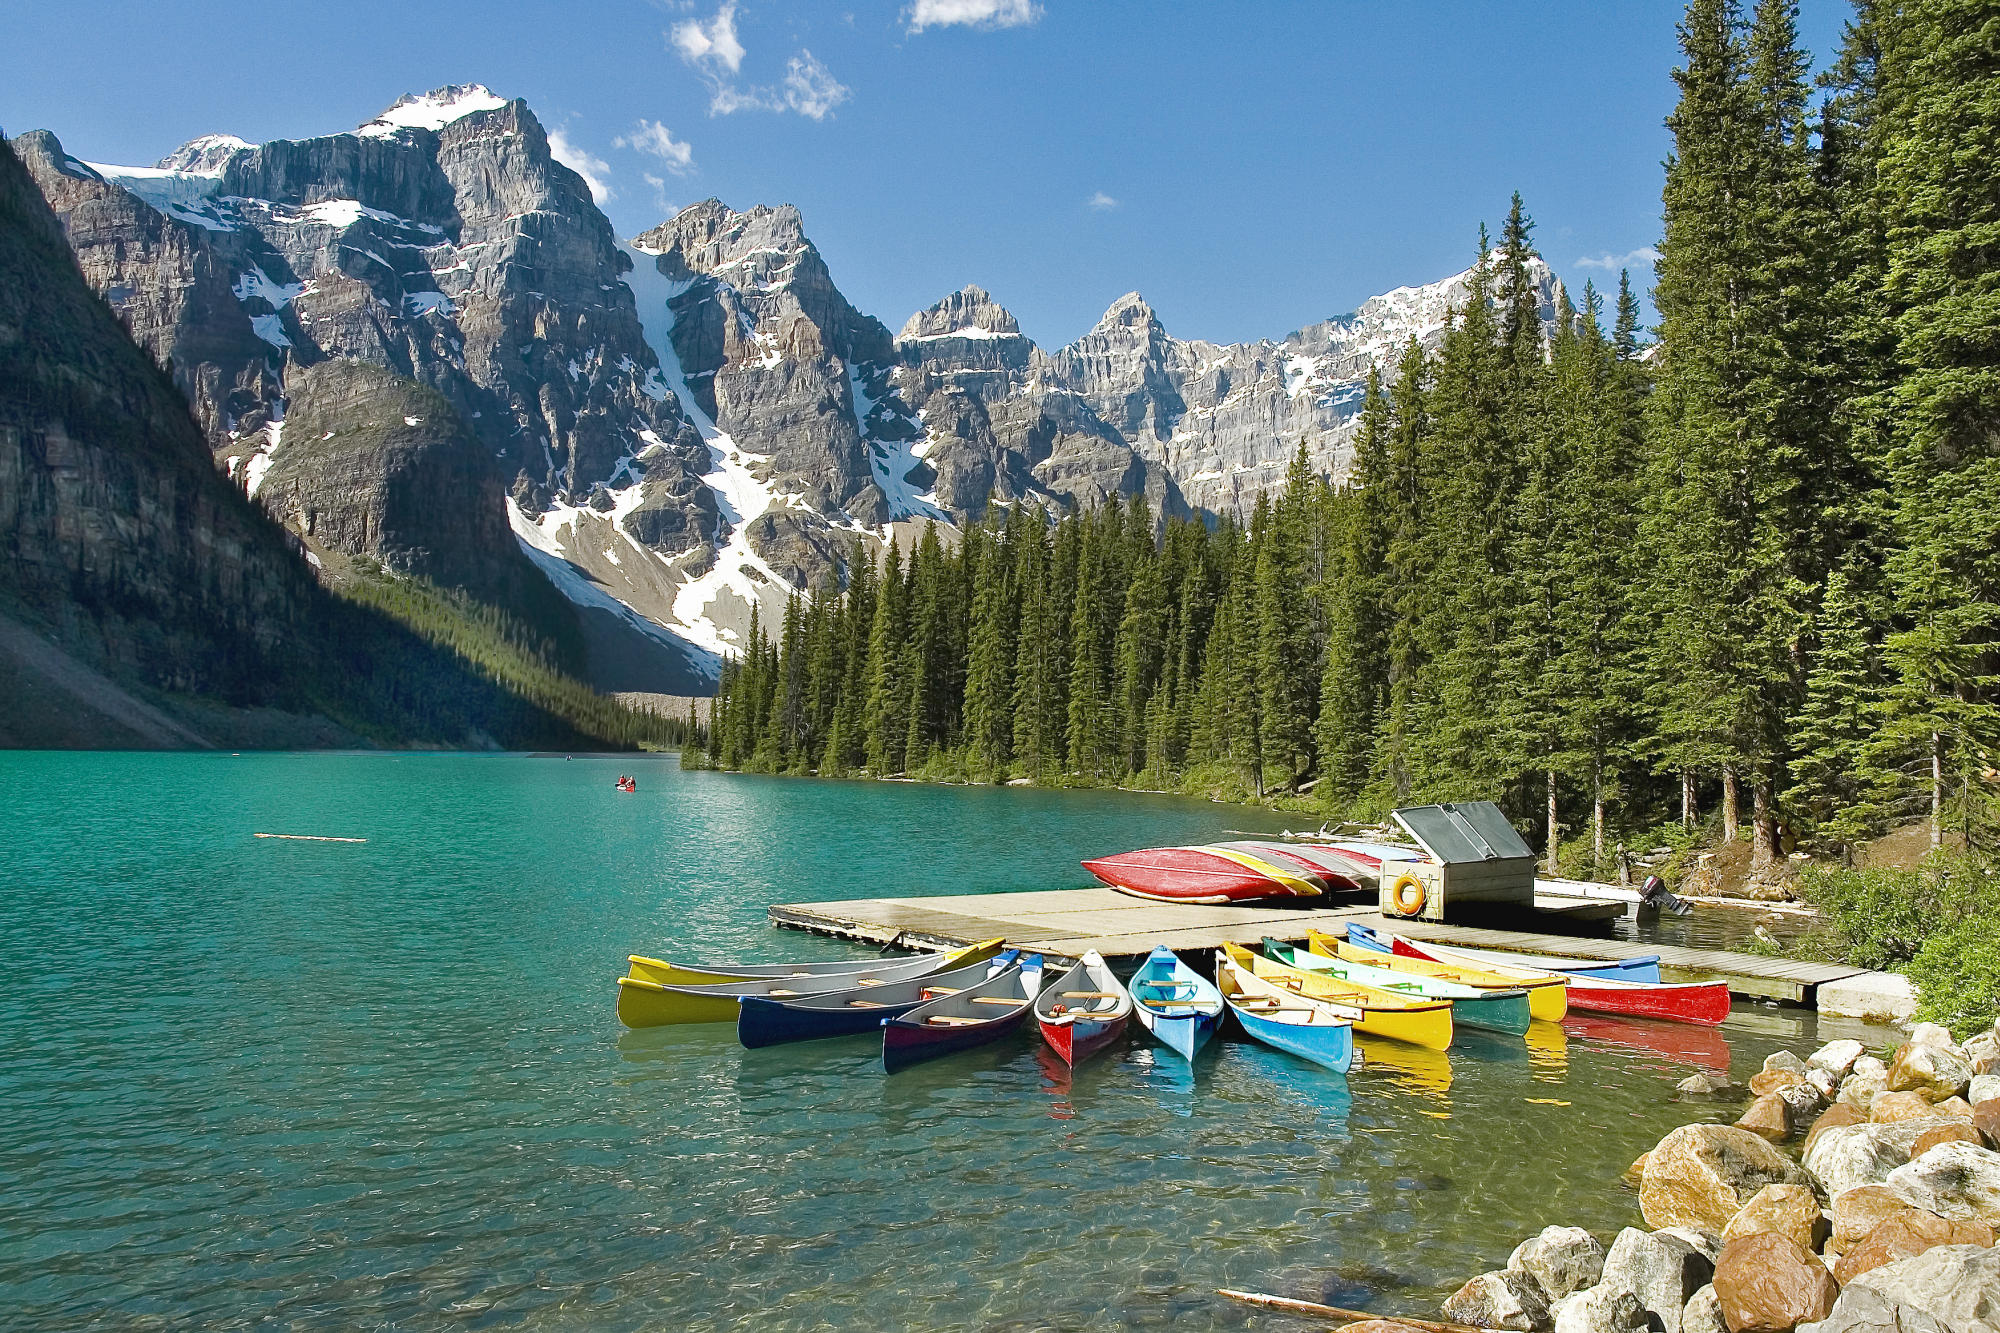 blog-countries-to-visit-2017-banff-national-park-lake